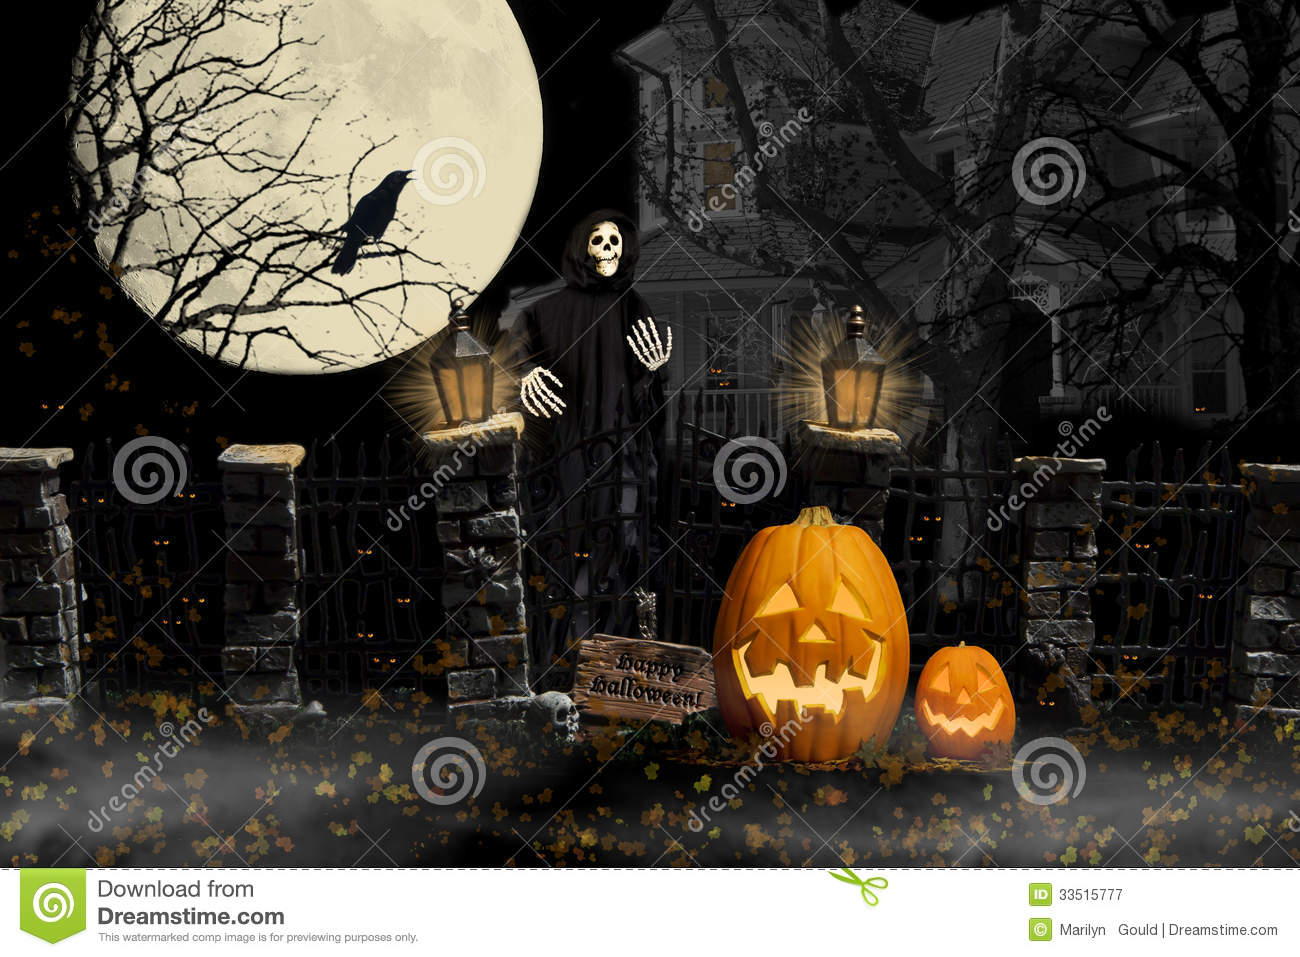 Creepy Fall Wallpaper Halloween Ghoul Haunted House Royalty Free Stock